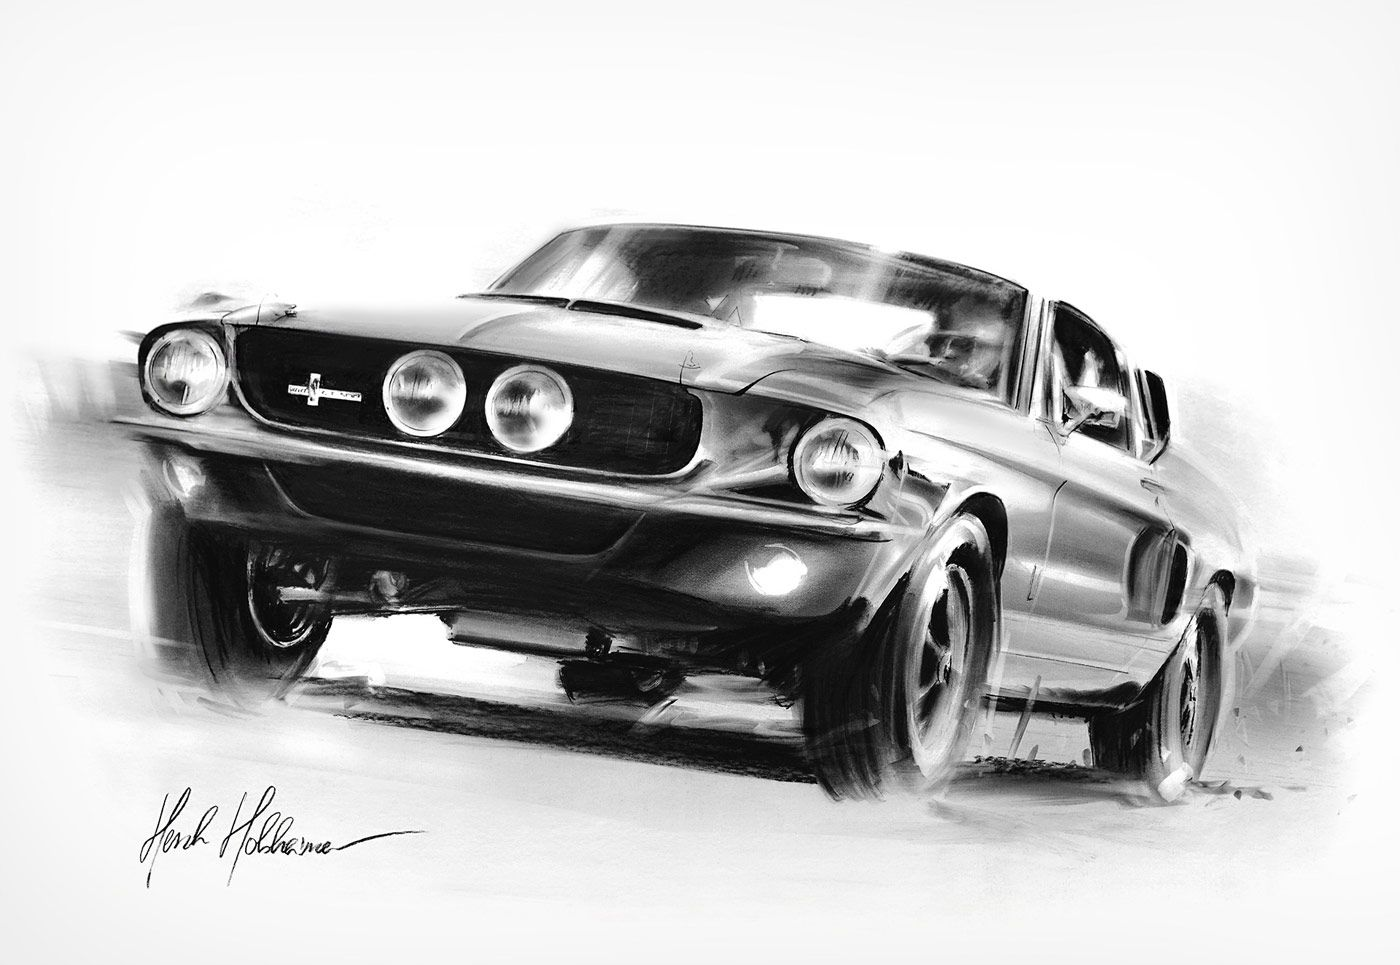 Amazing Charcoal Powered Racers Charcoal Cars And Drawings